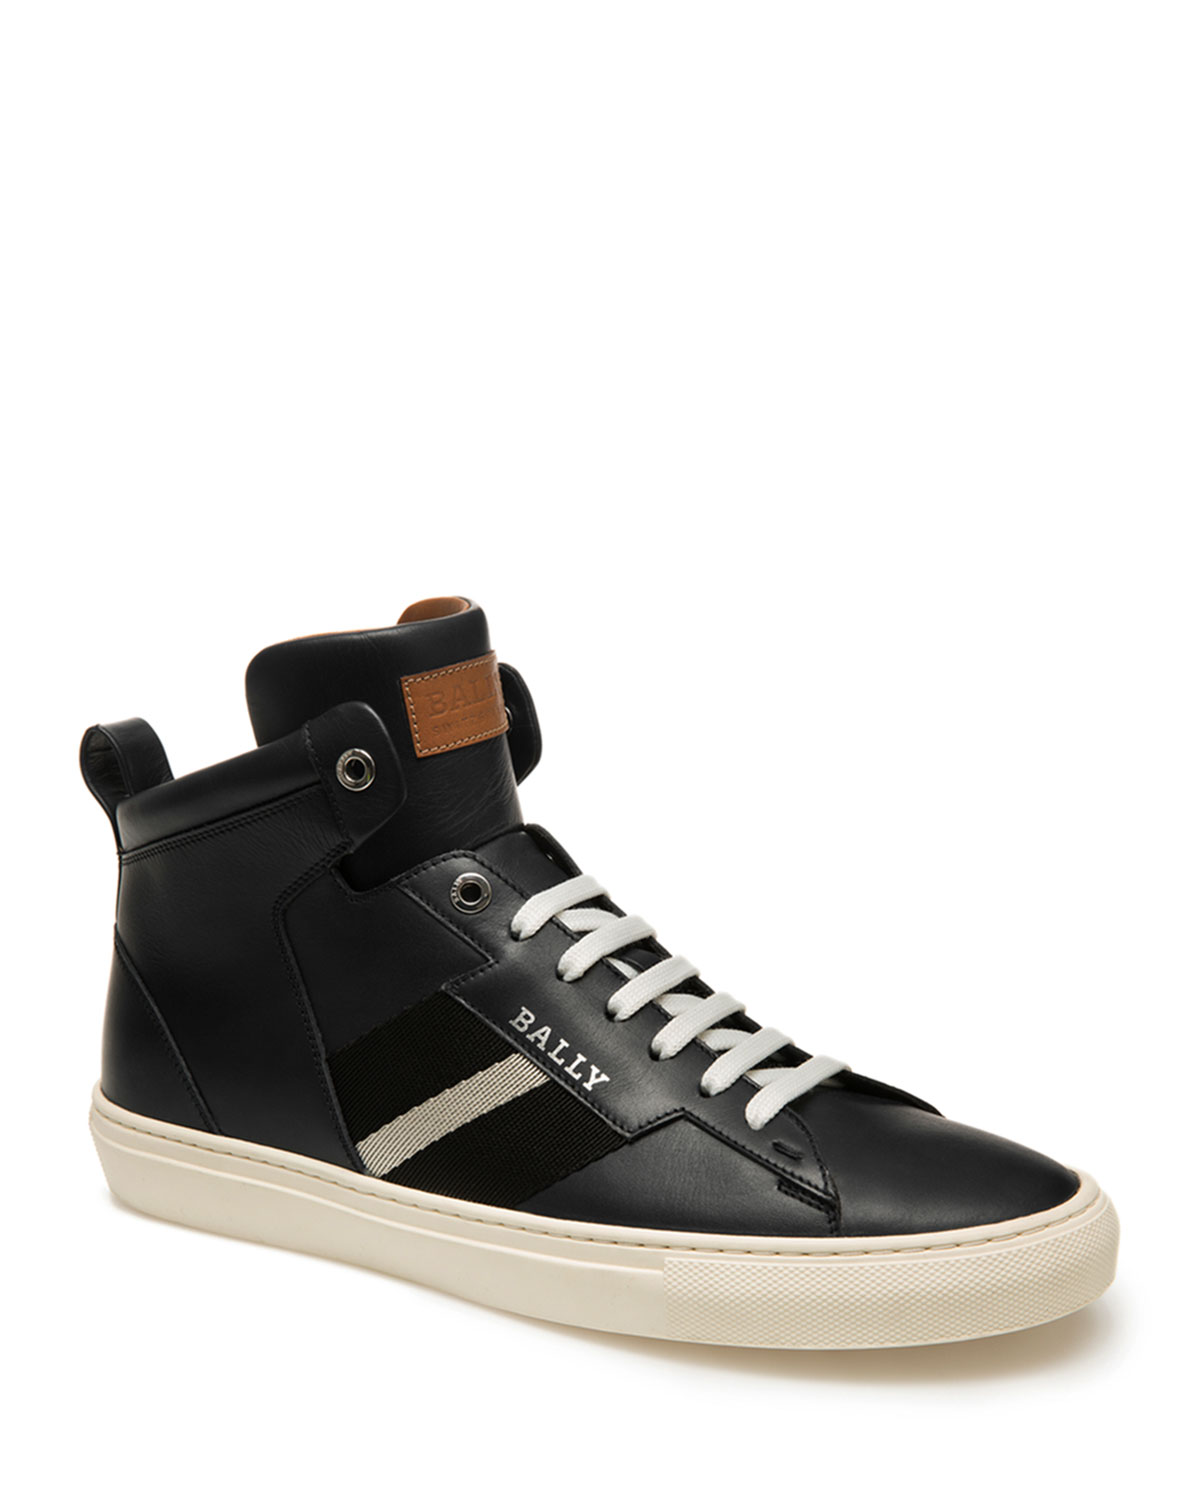 Bally Sneakers MEN'S HELVIO TRAINSPOTTING LEATHER HIGH-TOP SNEAKERS